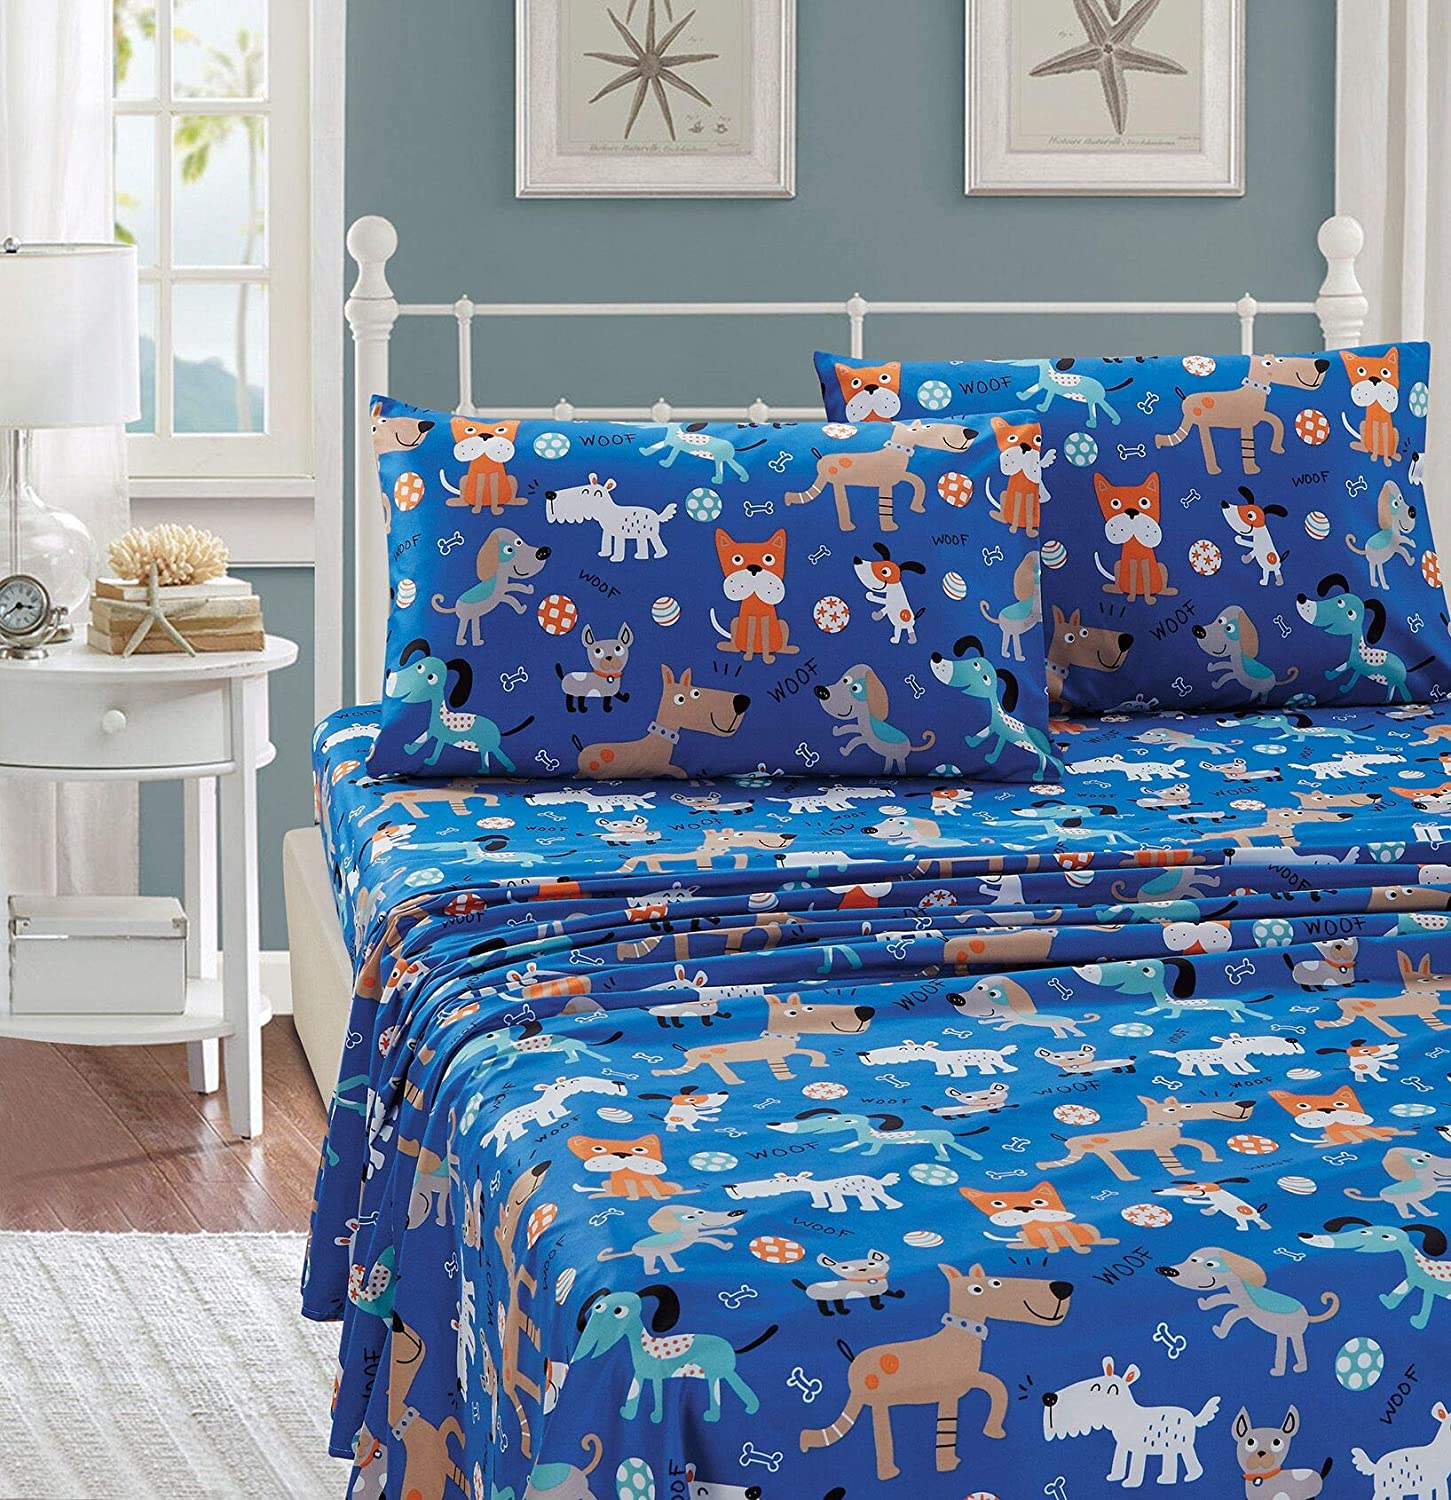 Kids Zone Home Linen 3 Piece Twin Size Sheet Set for Boys/Teens Blue Dog Multi-Color Dogs on a Blue Sheet.